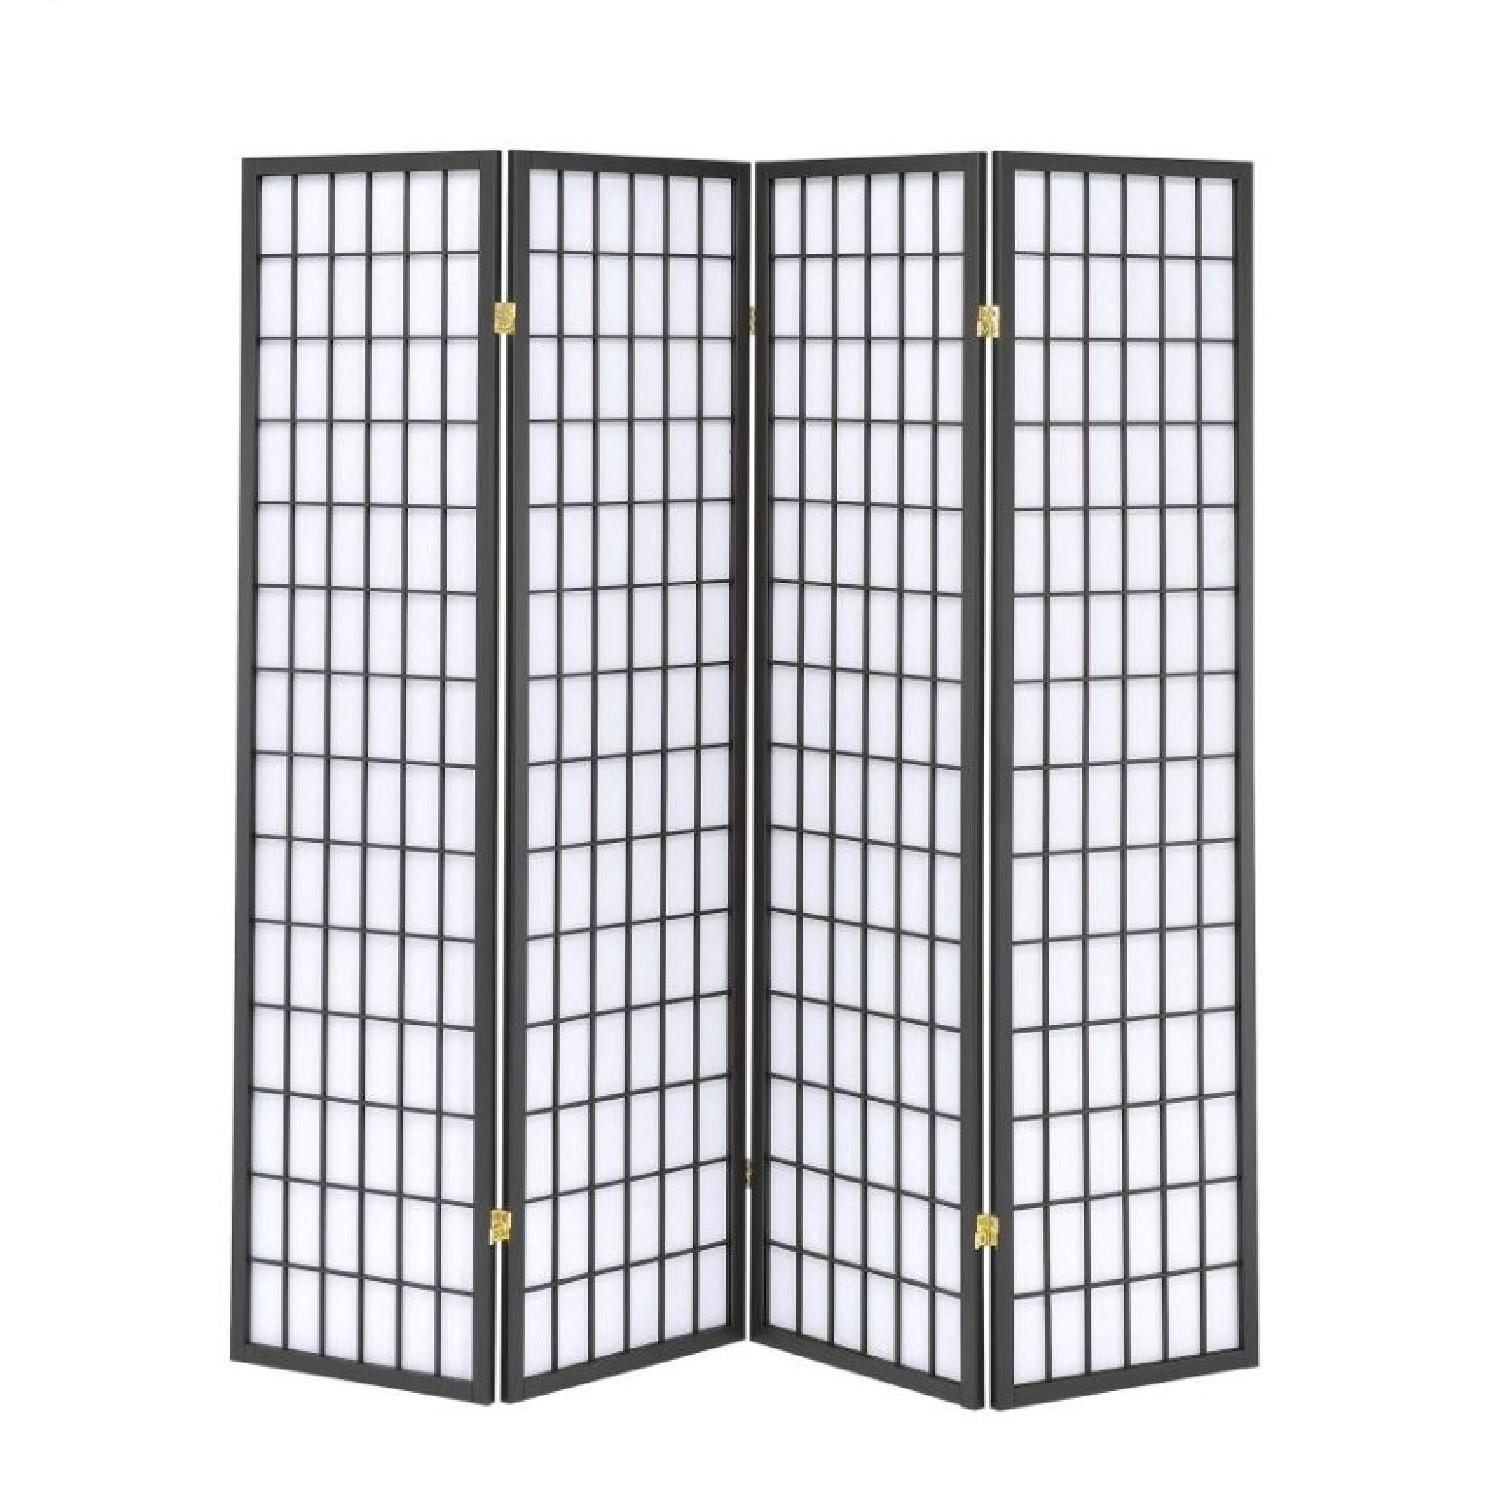 Simple Four Panel Folding Screen in Black Frame